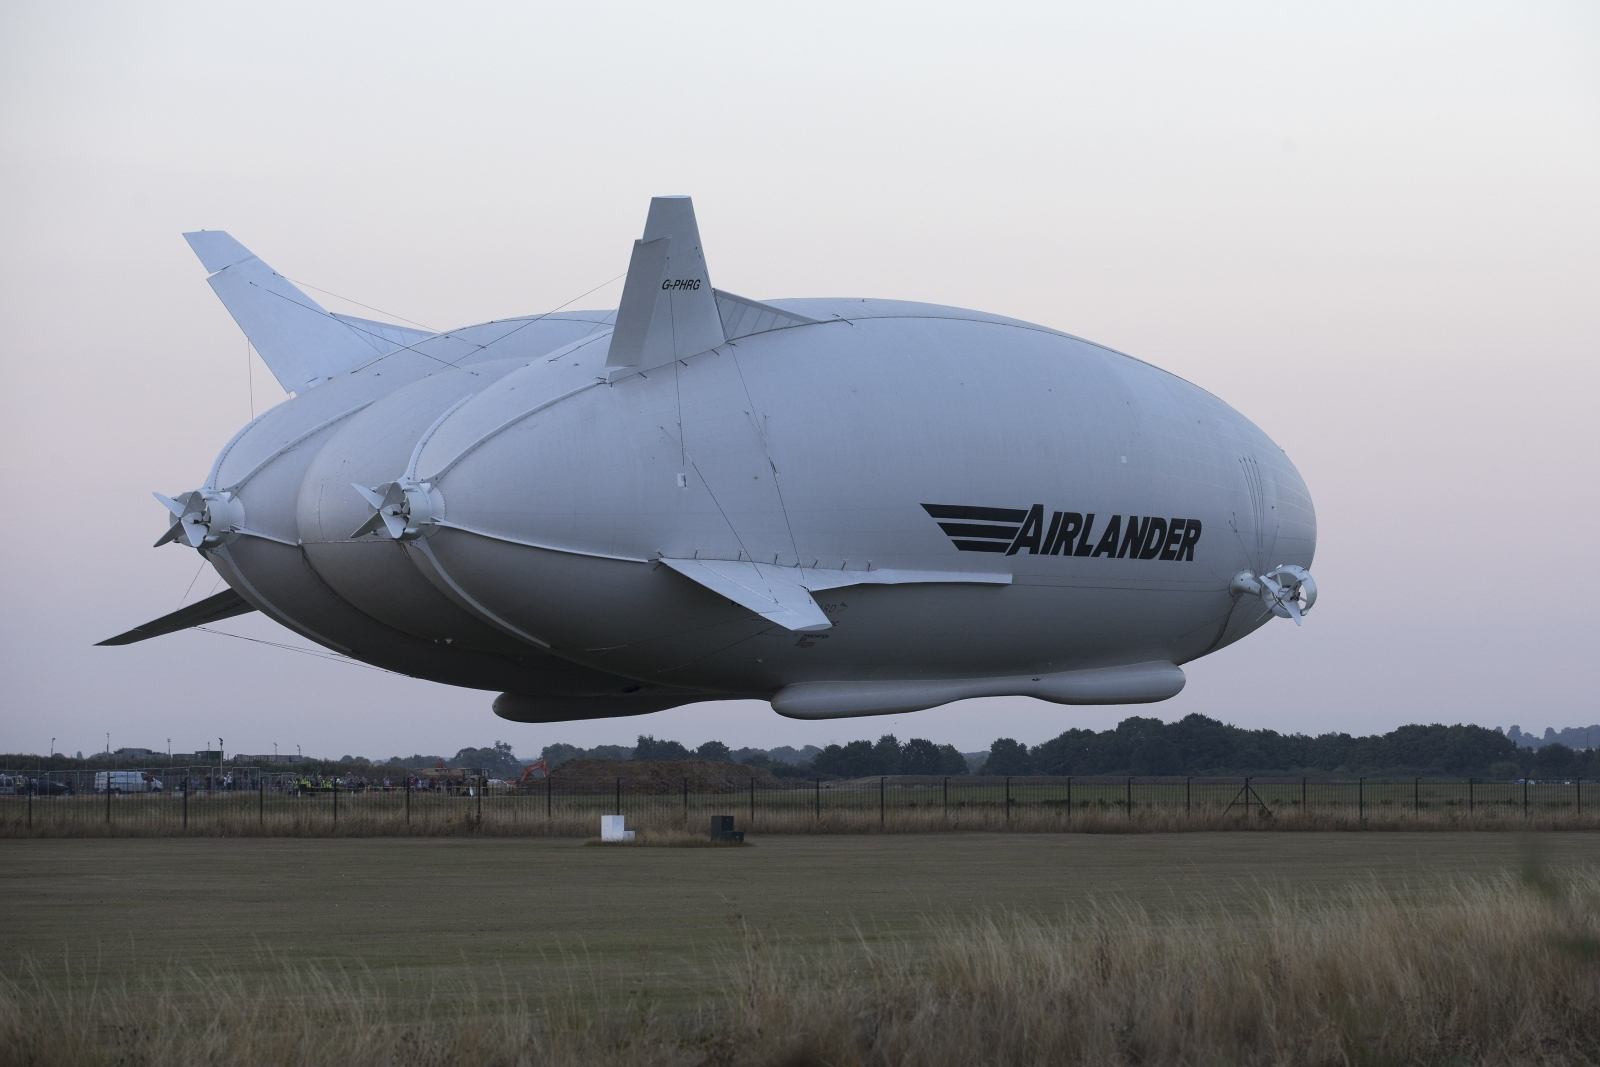 World's largest aircraft crashes in Bedfordshire, injuring member of staff